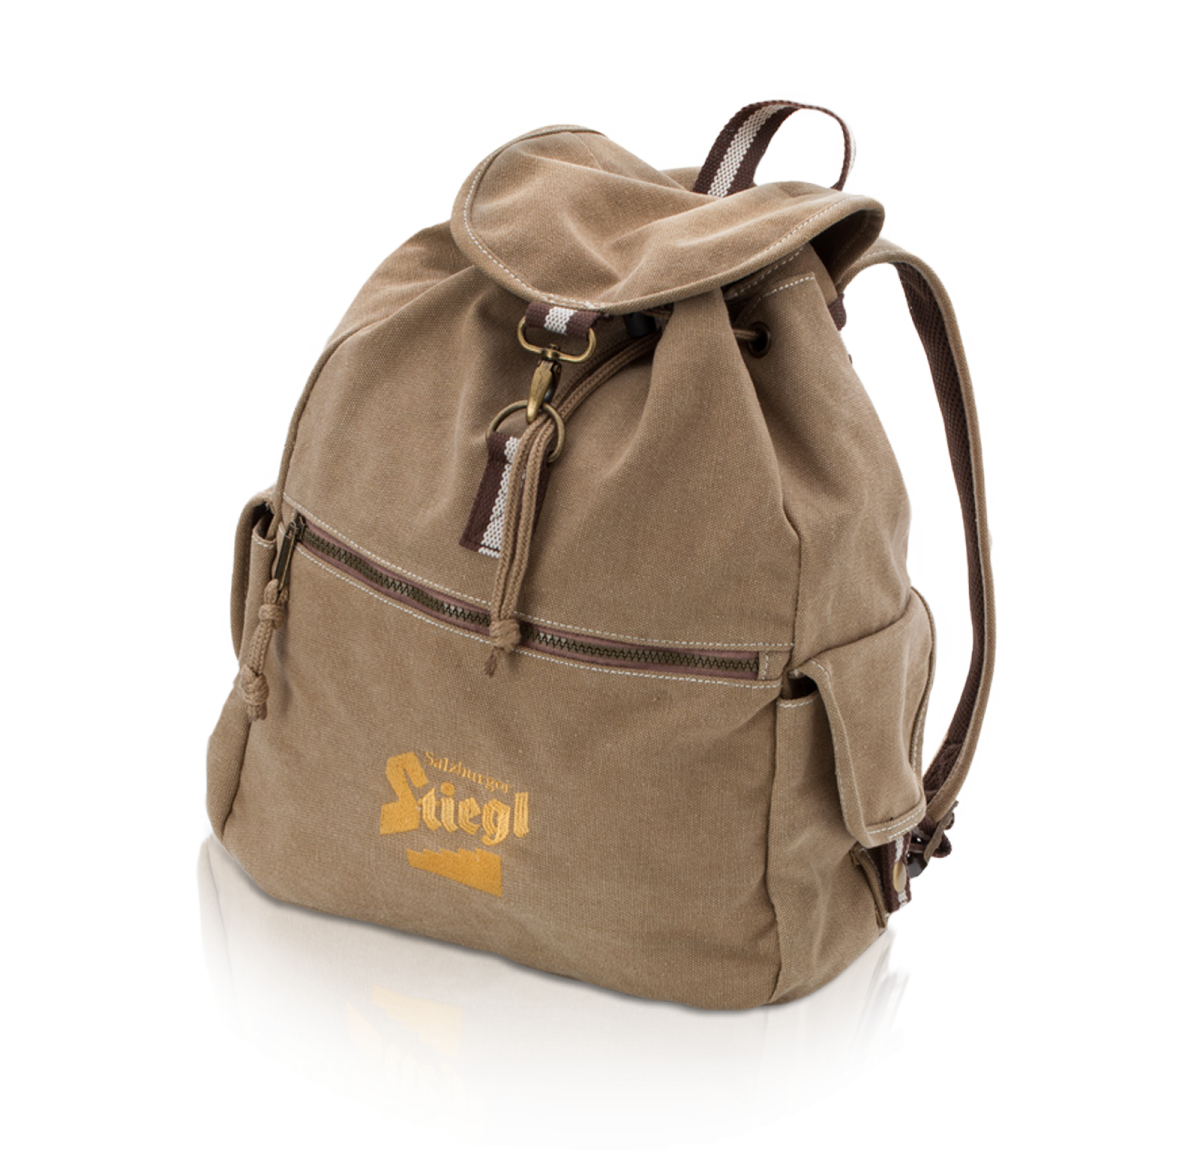 old fashioned hiking backpacks sabis bulldog athletics